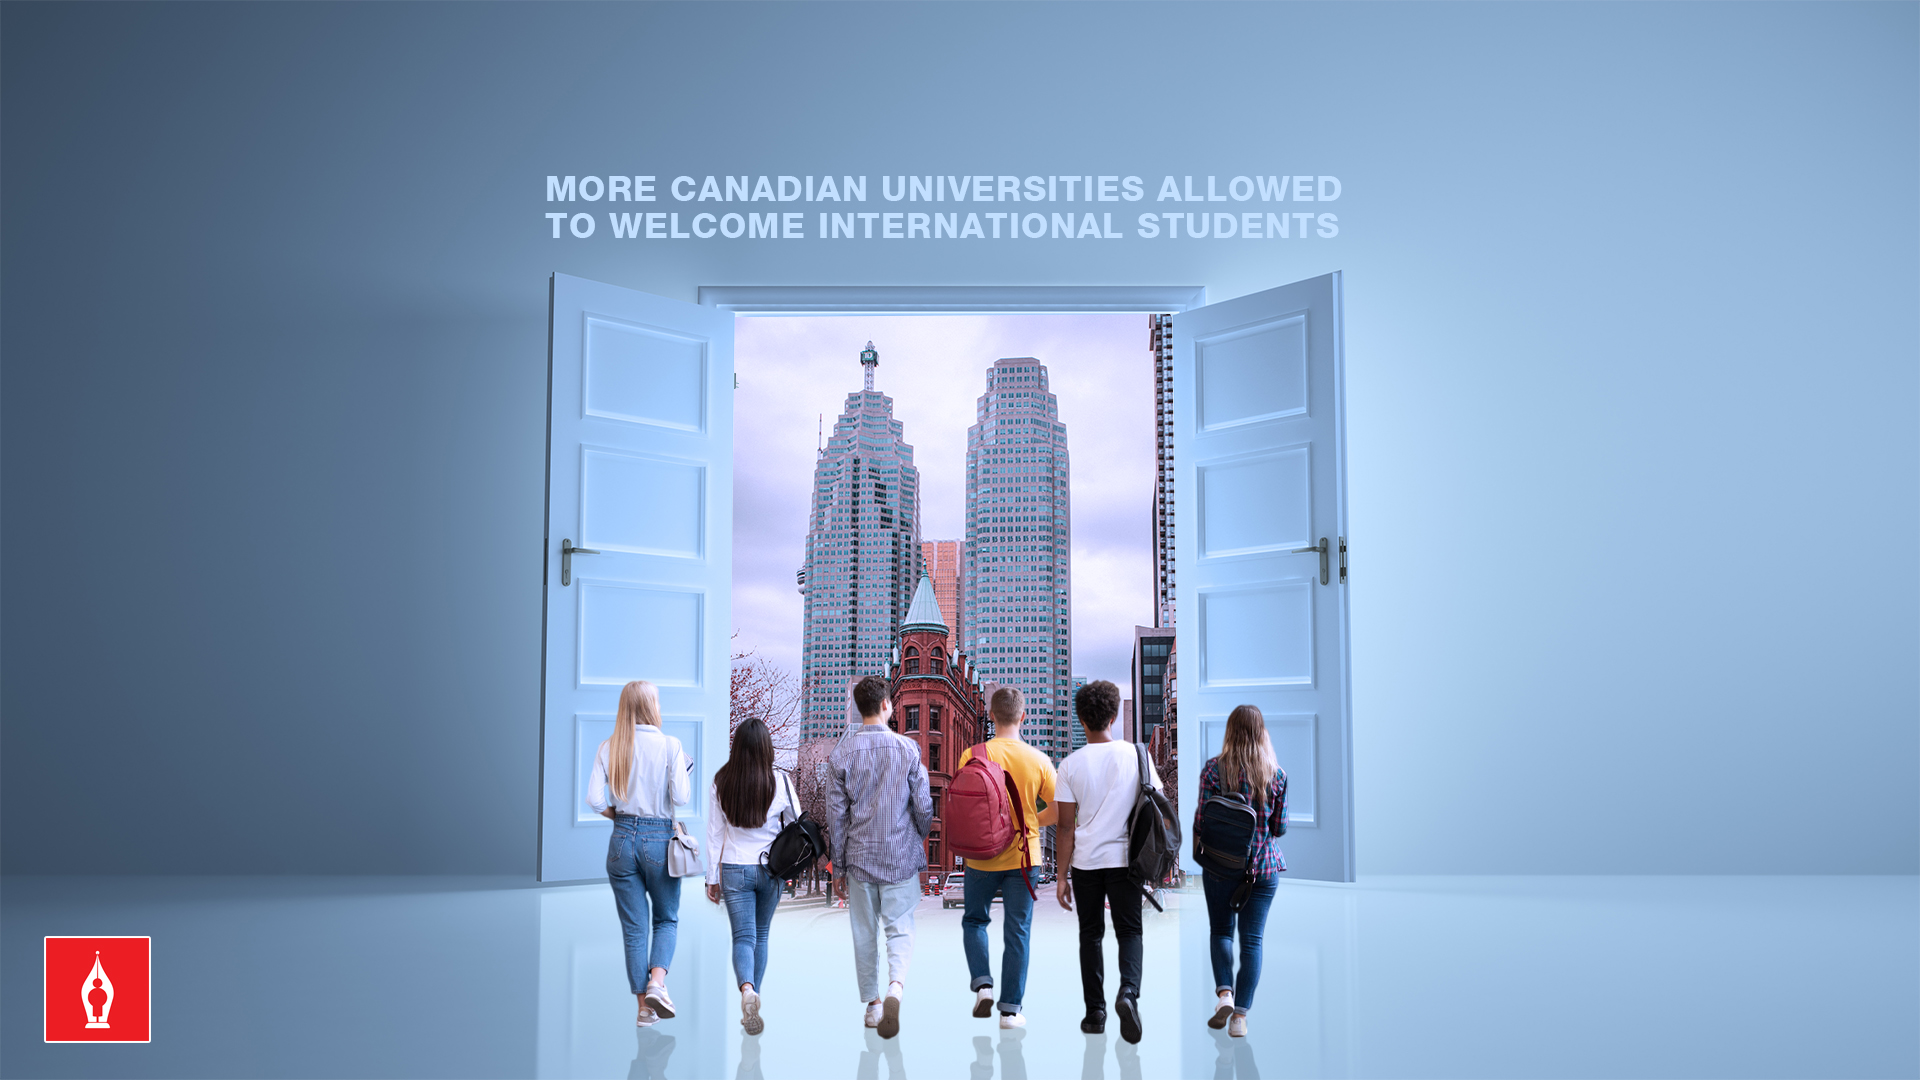 More Canadian universities allowed to welcome international students